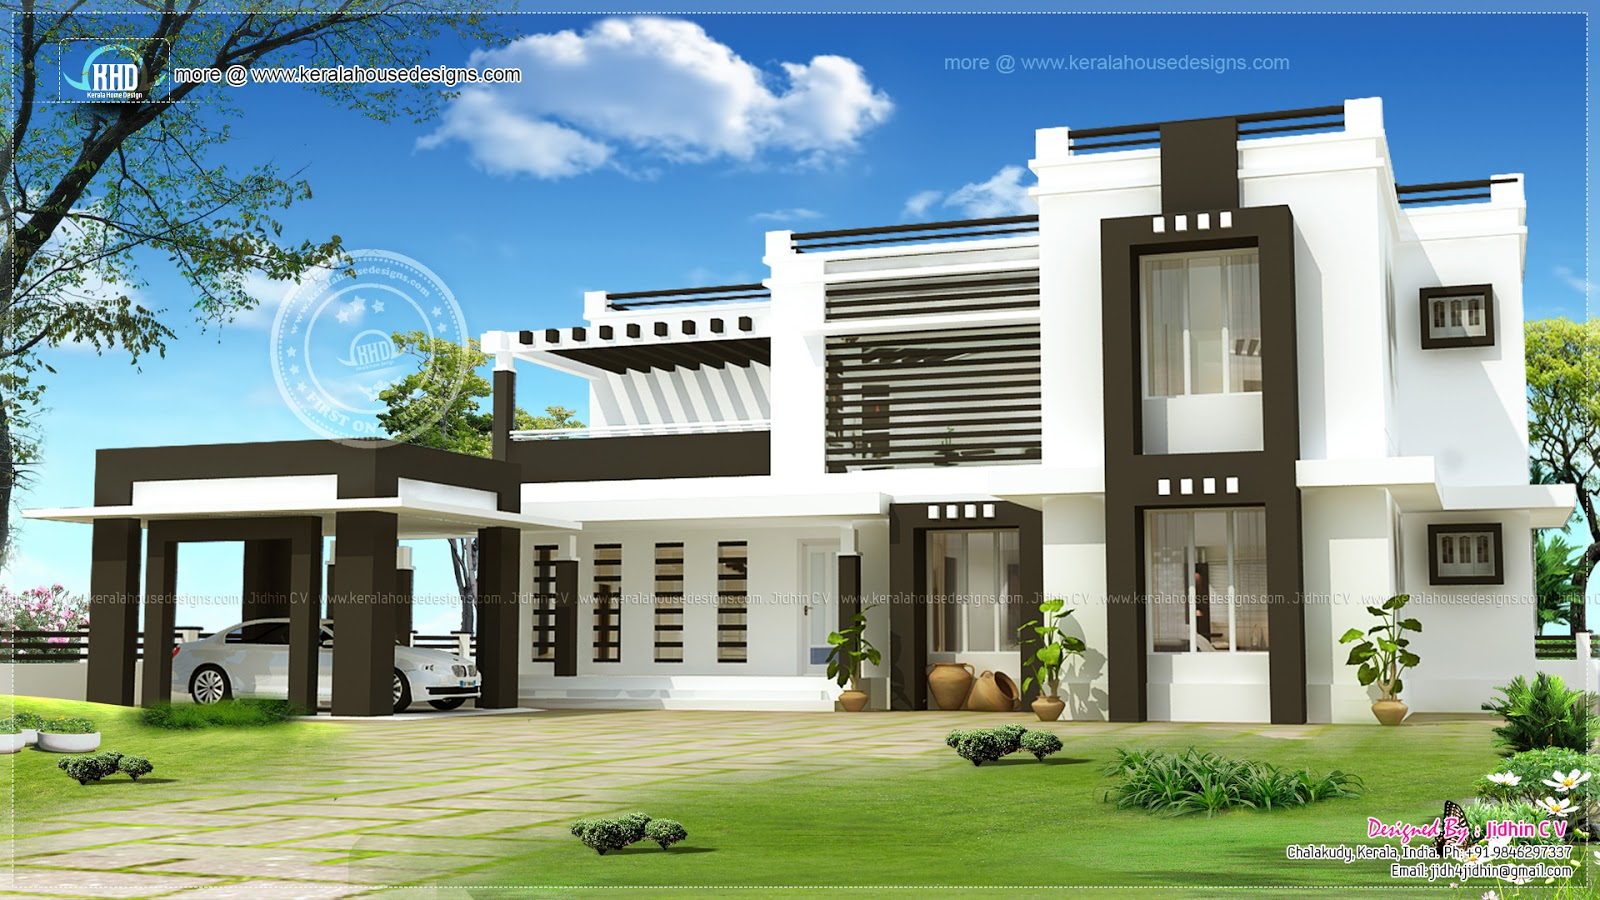 Kerala home design siddu buzz House plan flat roof design